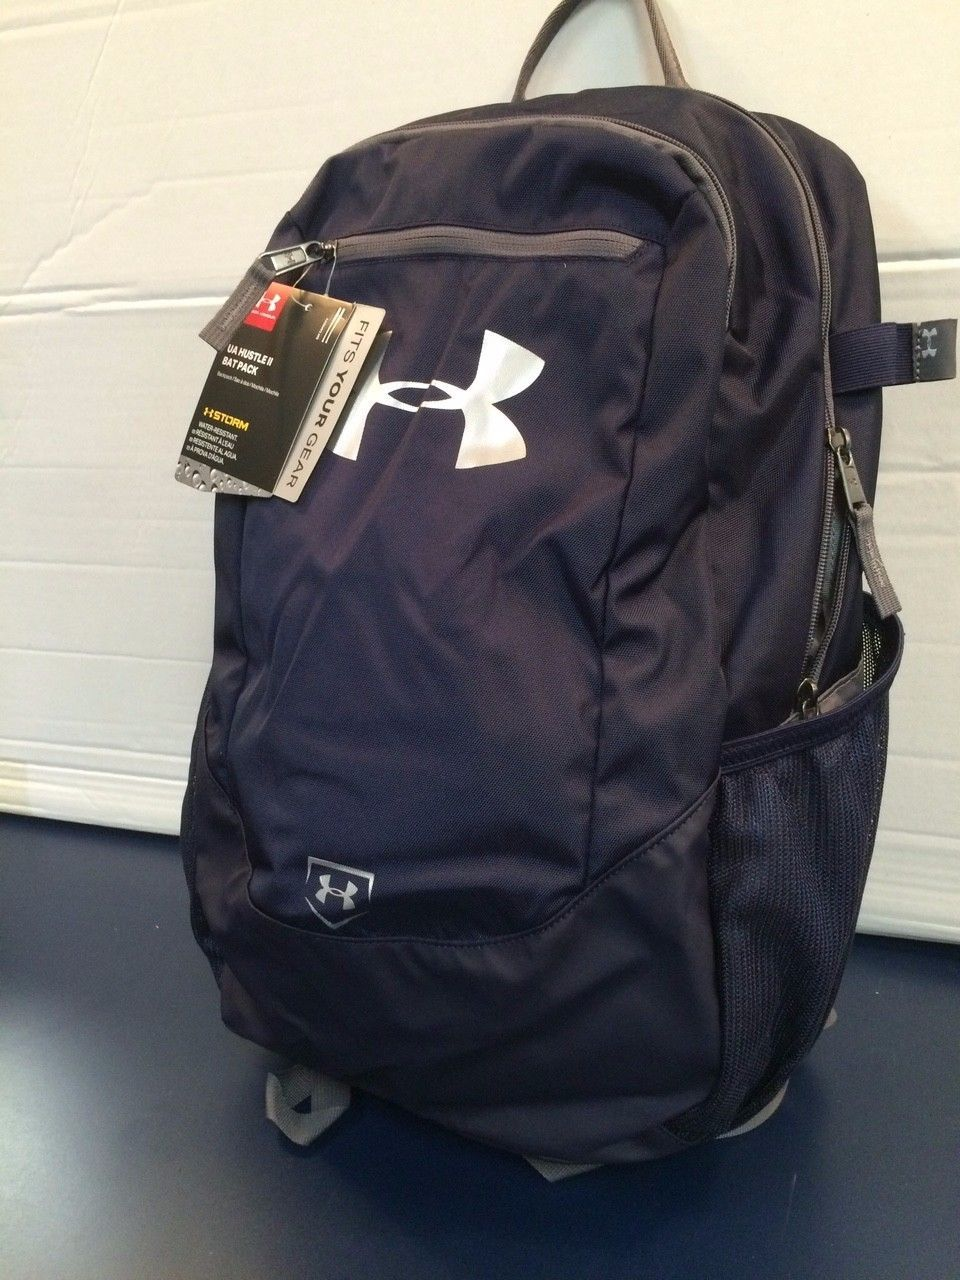 Equipment Bags 50807: Under Armour Navy Hustle 12 Backpack Bat Bag -> BUY IT NOW ONLY: $35 on eBay!